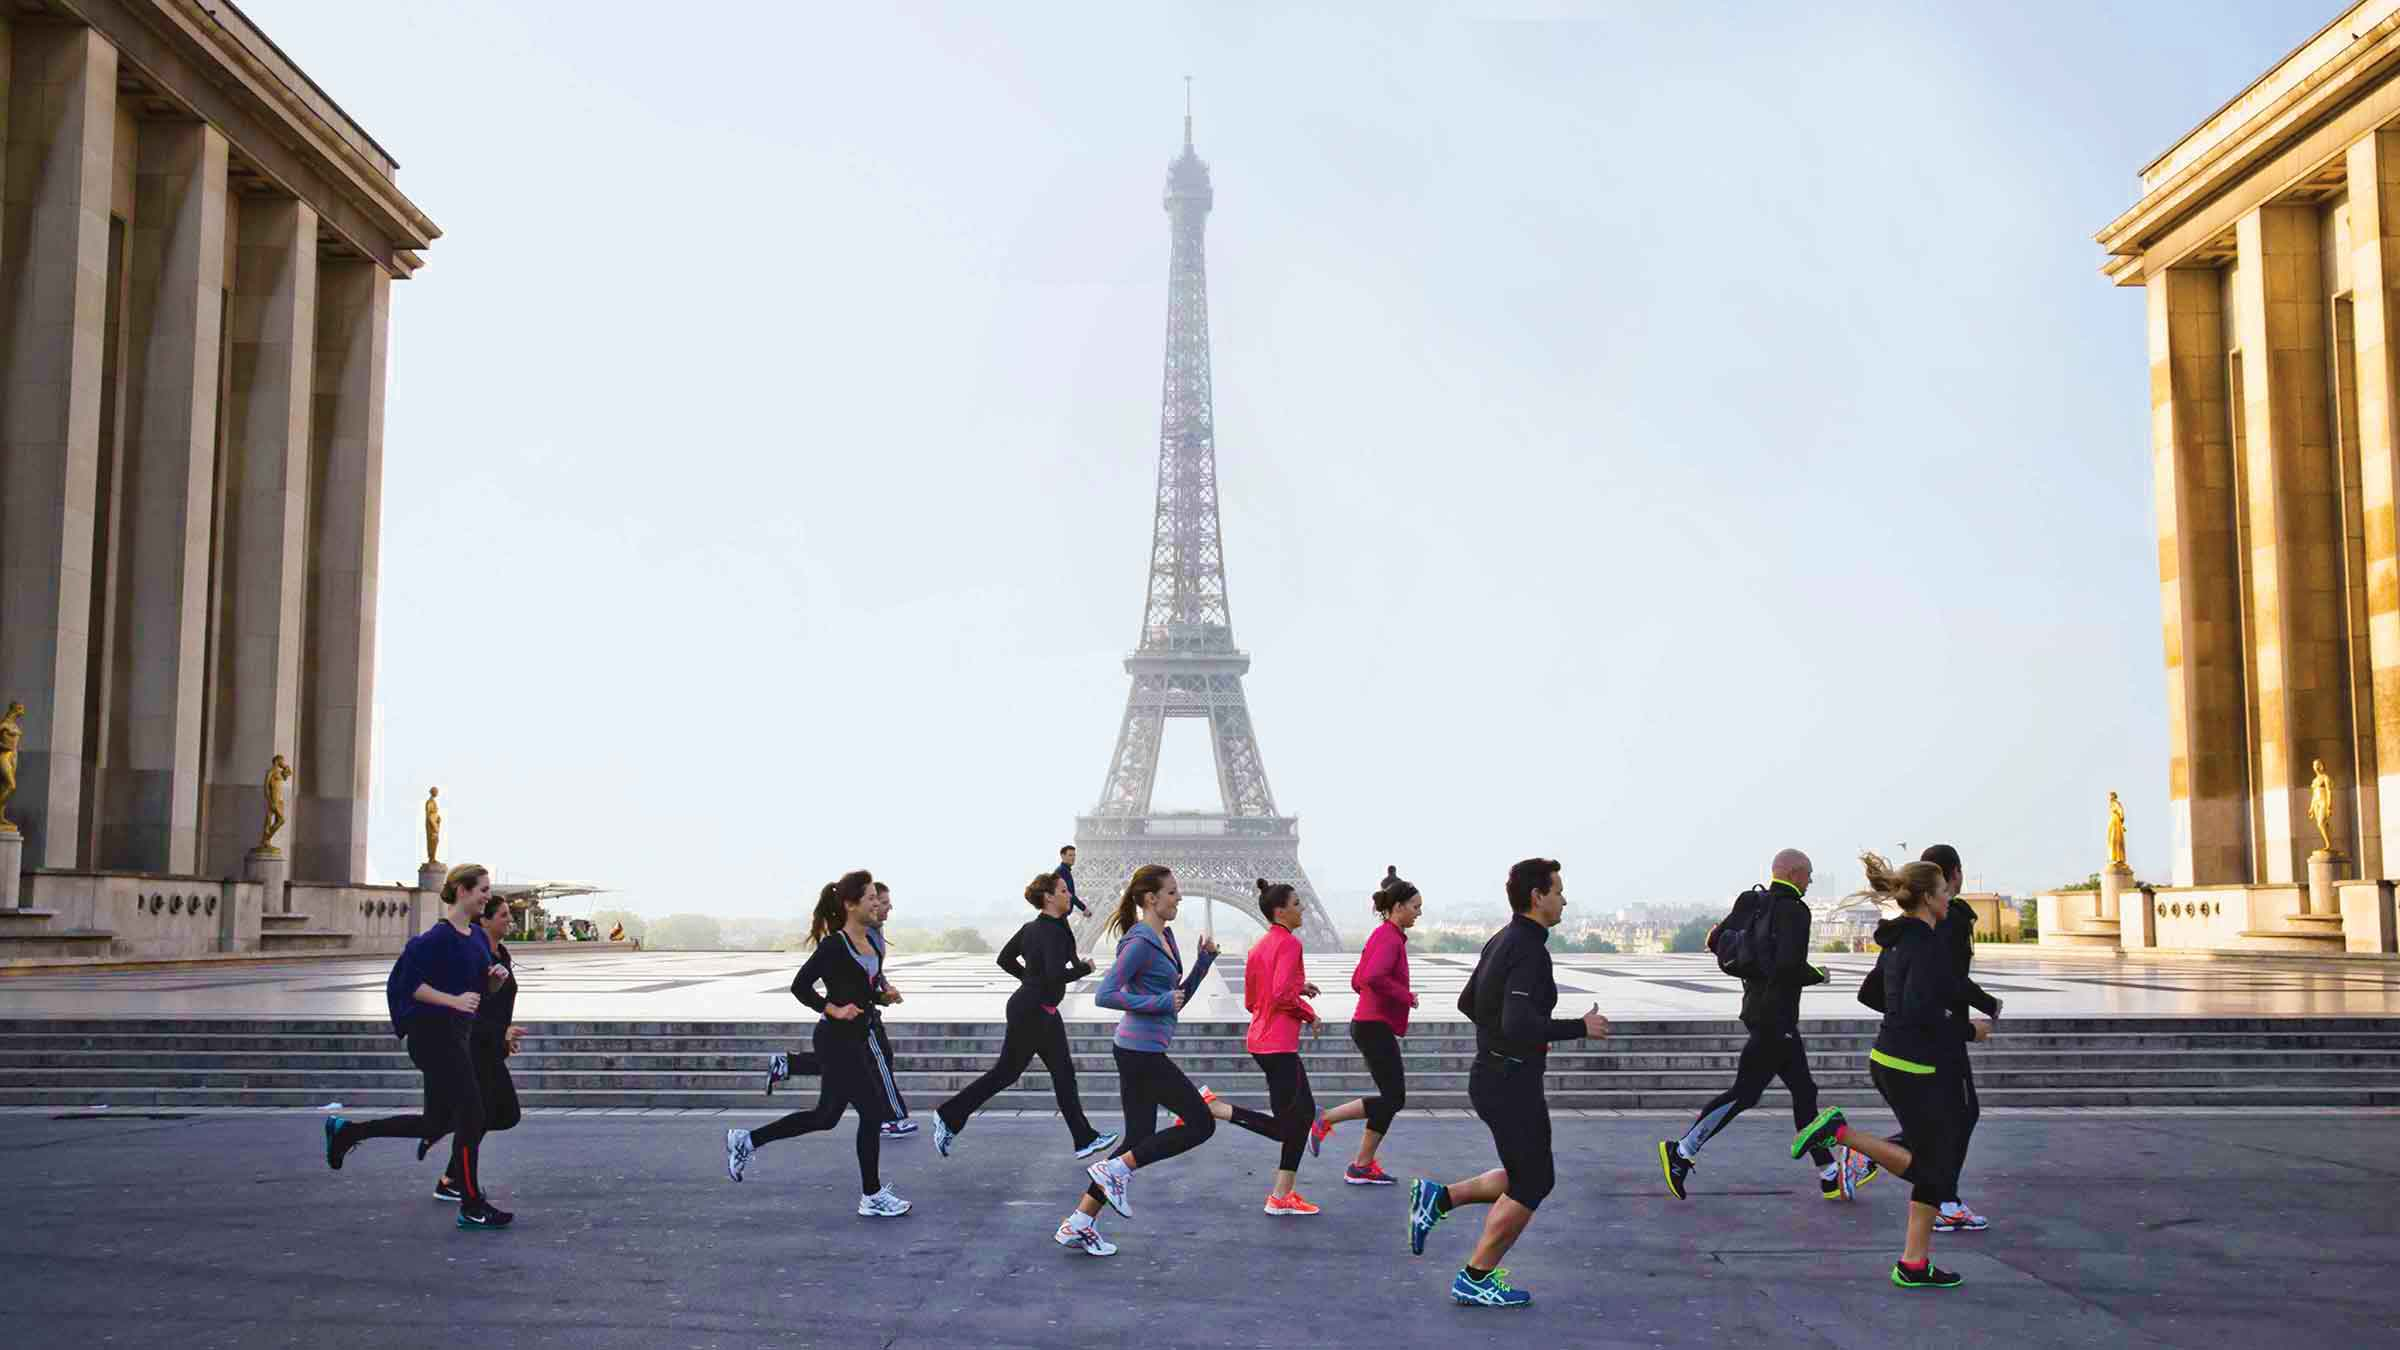 Four Seasons Hotel guests jogging past the Eiffel Tower—Paris, France